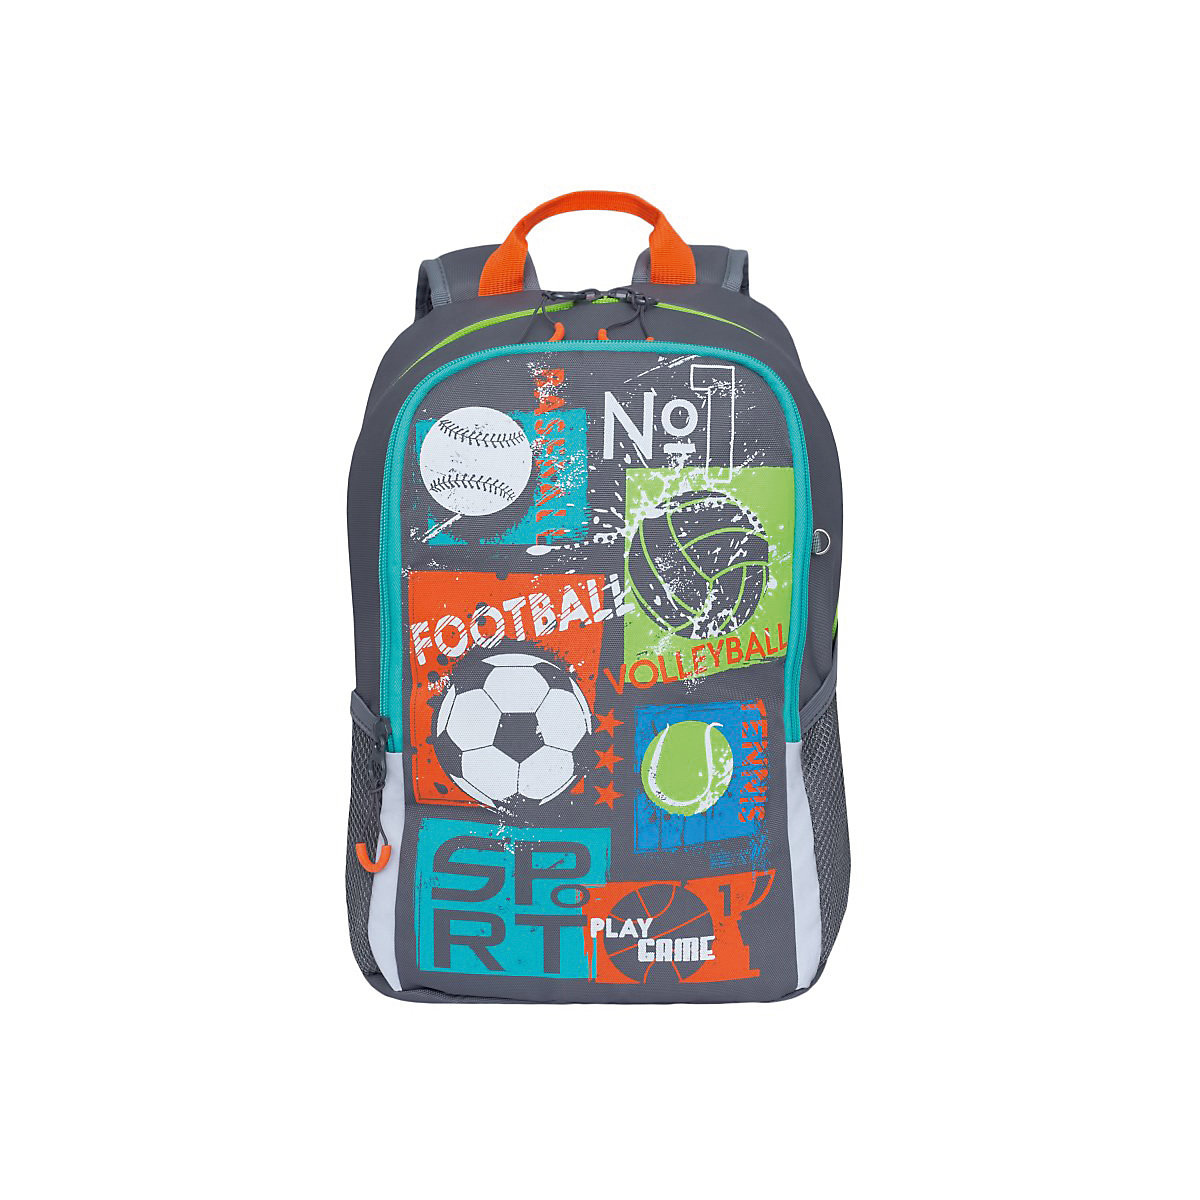 GRIZZLY School Bags 11046784 Schoolbag Backpack Orthopedic Bag For Boy And Girl Animals MTpromo